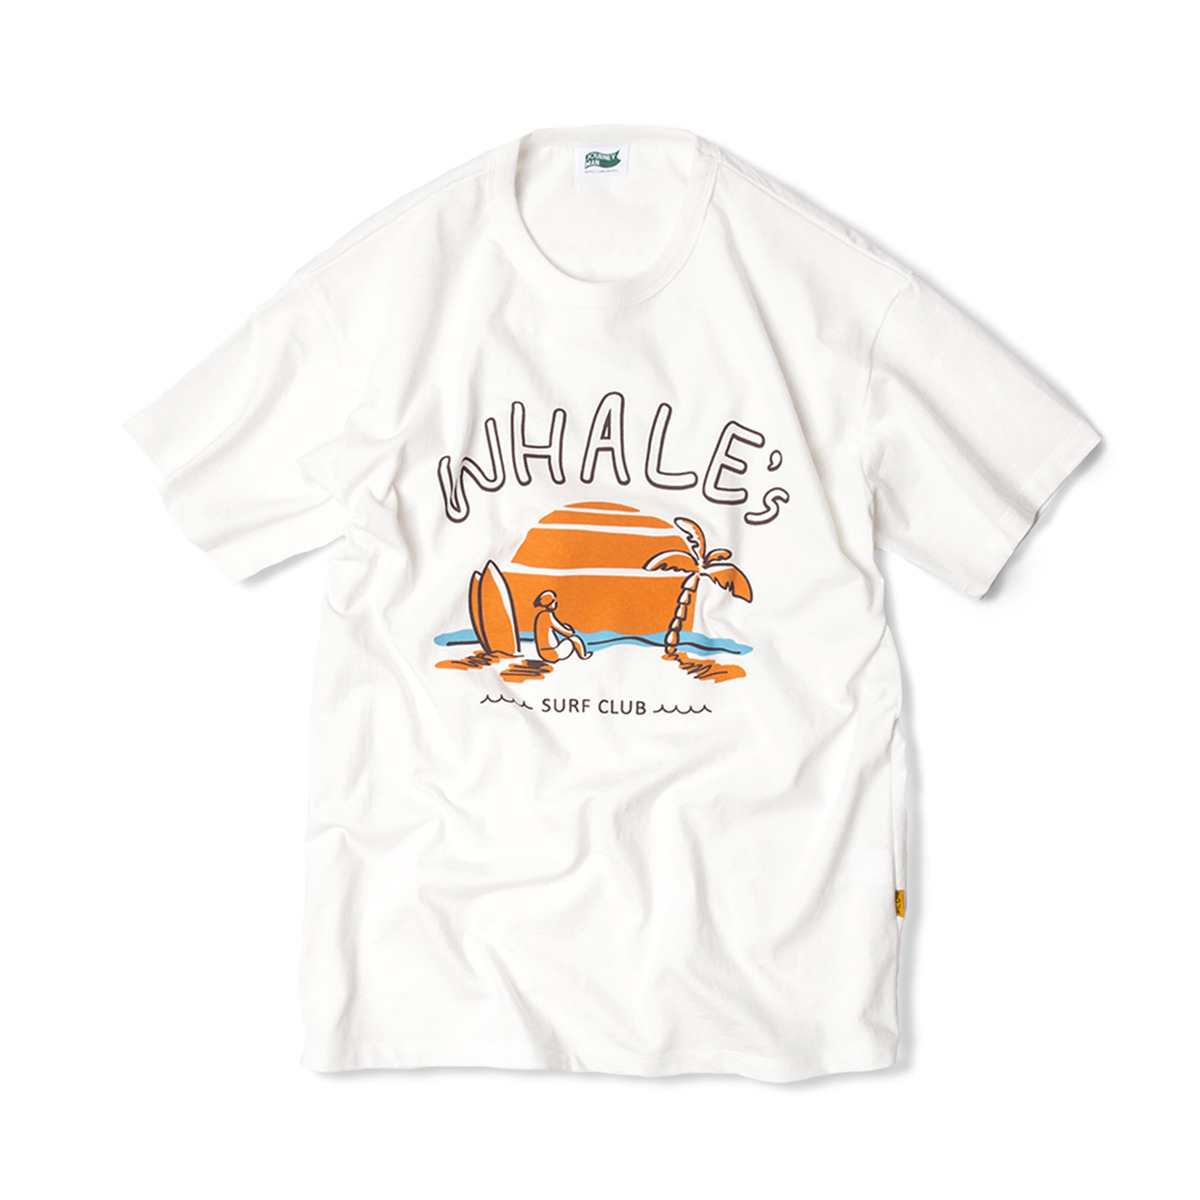 WHALE'S SURFER TEAM SUNSET BEACH T-SHIRTS 'BLEACHED WHITE'